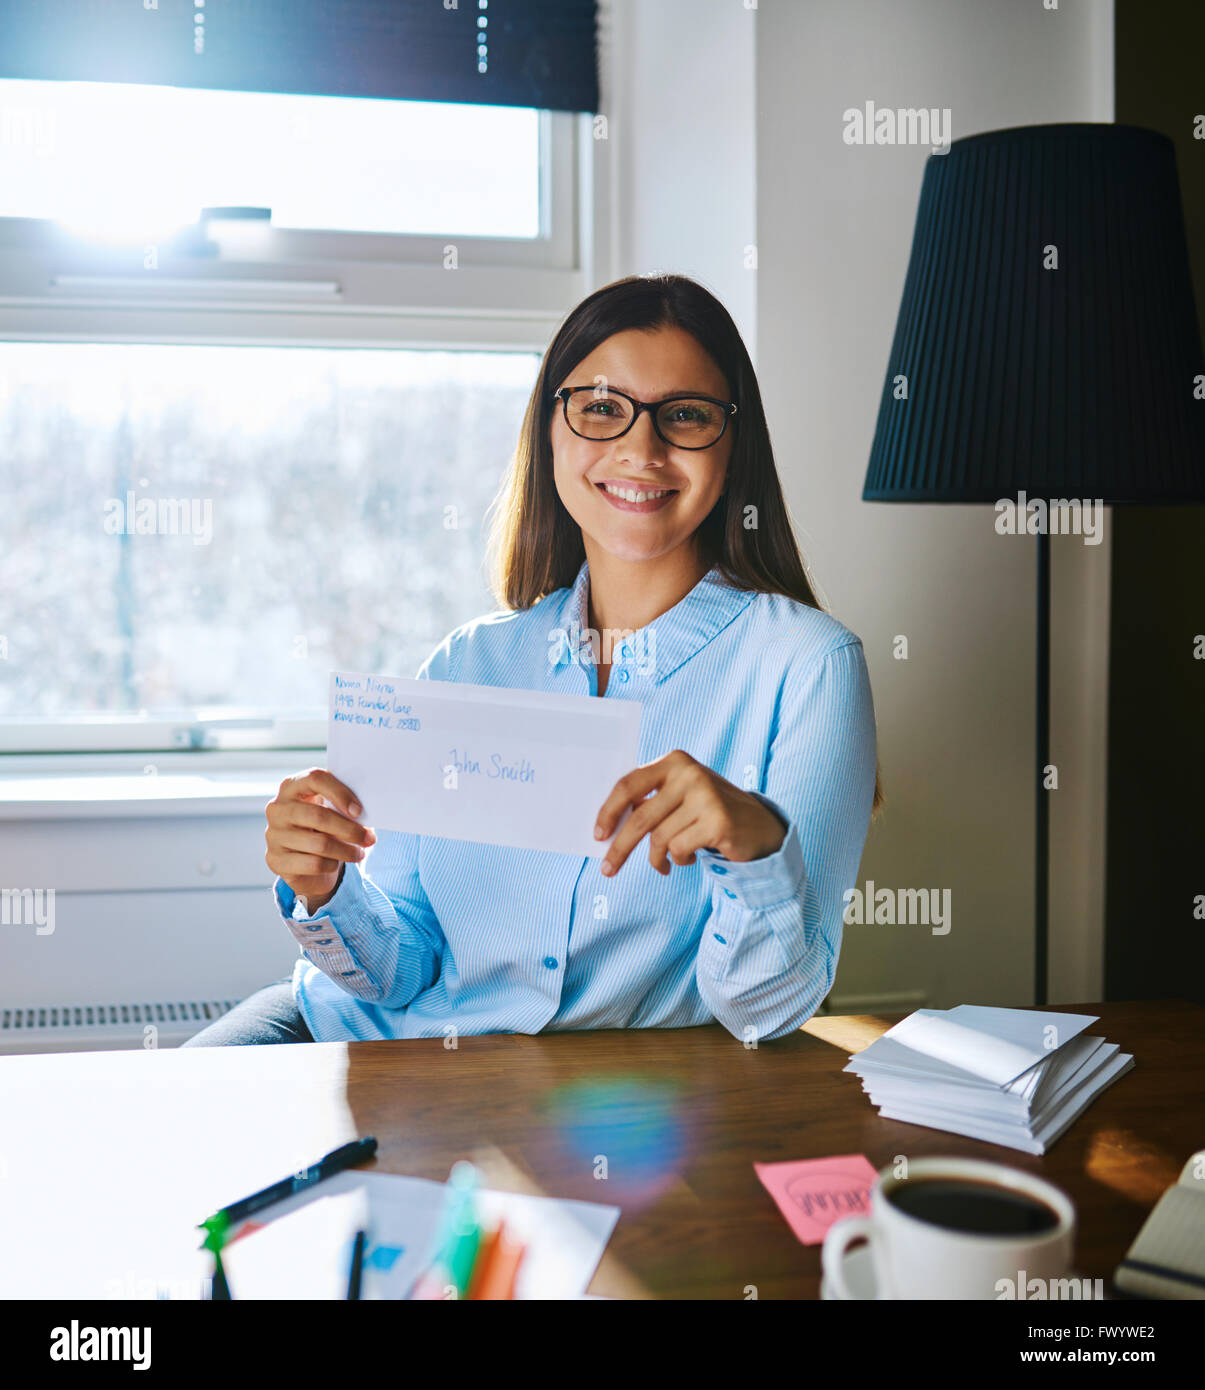 Happy single woman in glasses and light blue blouse holding envelope with handwritten address while seated behind - Stock Image